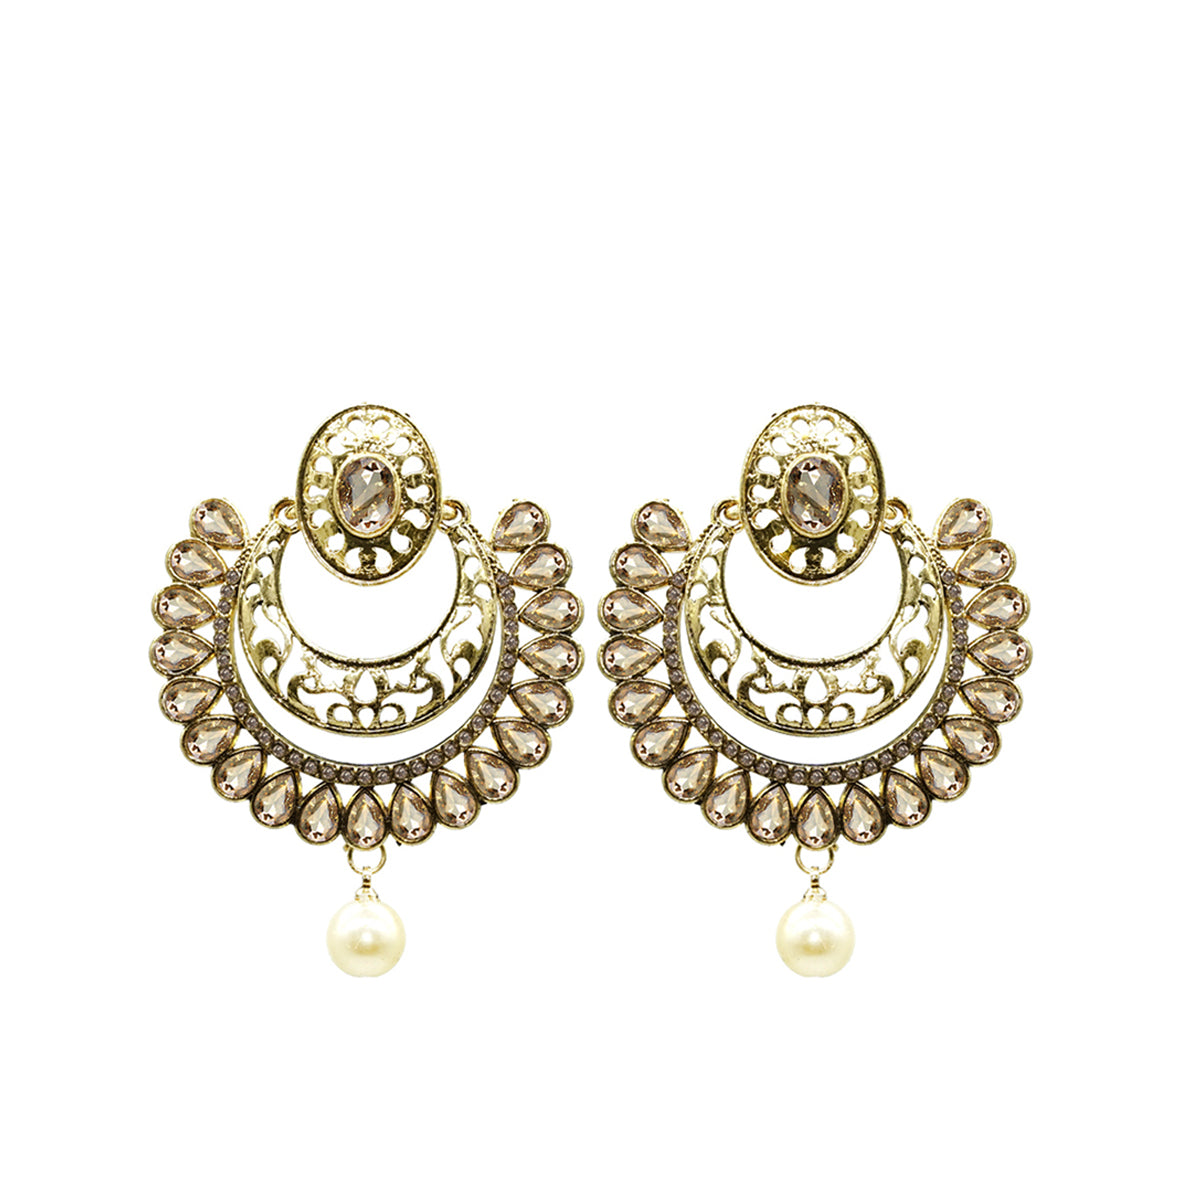 Golden Beads Contemporary Statement Earrings - Kiyara